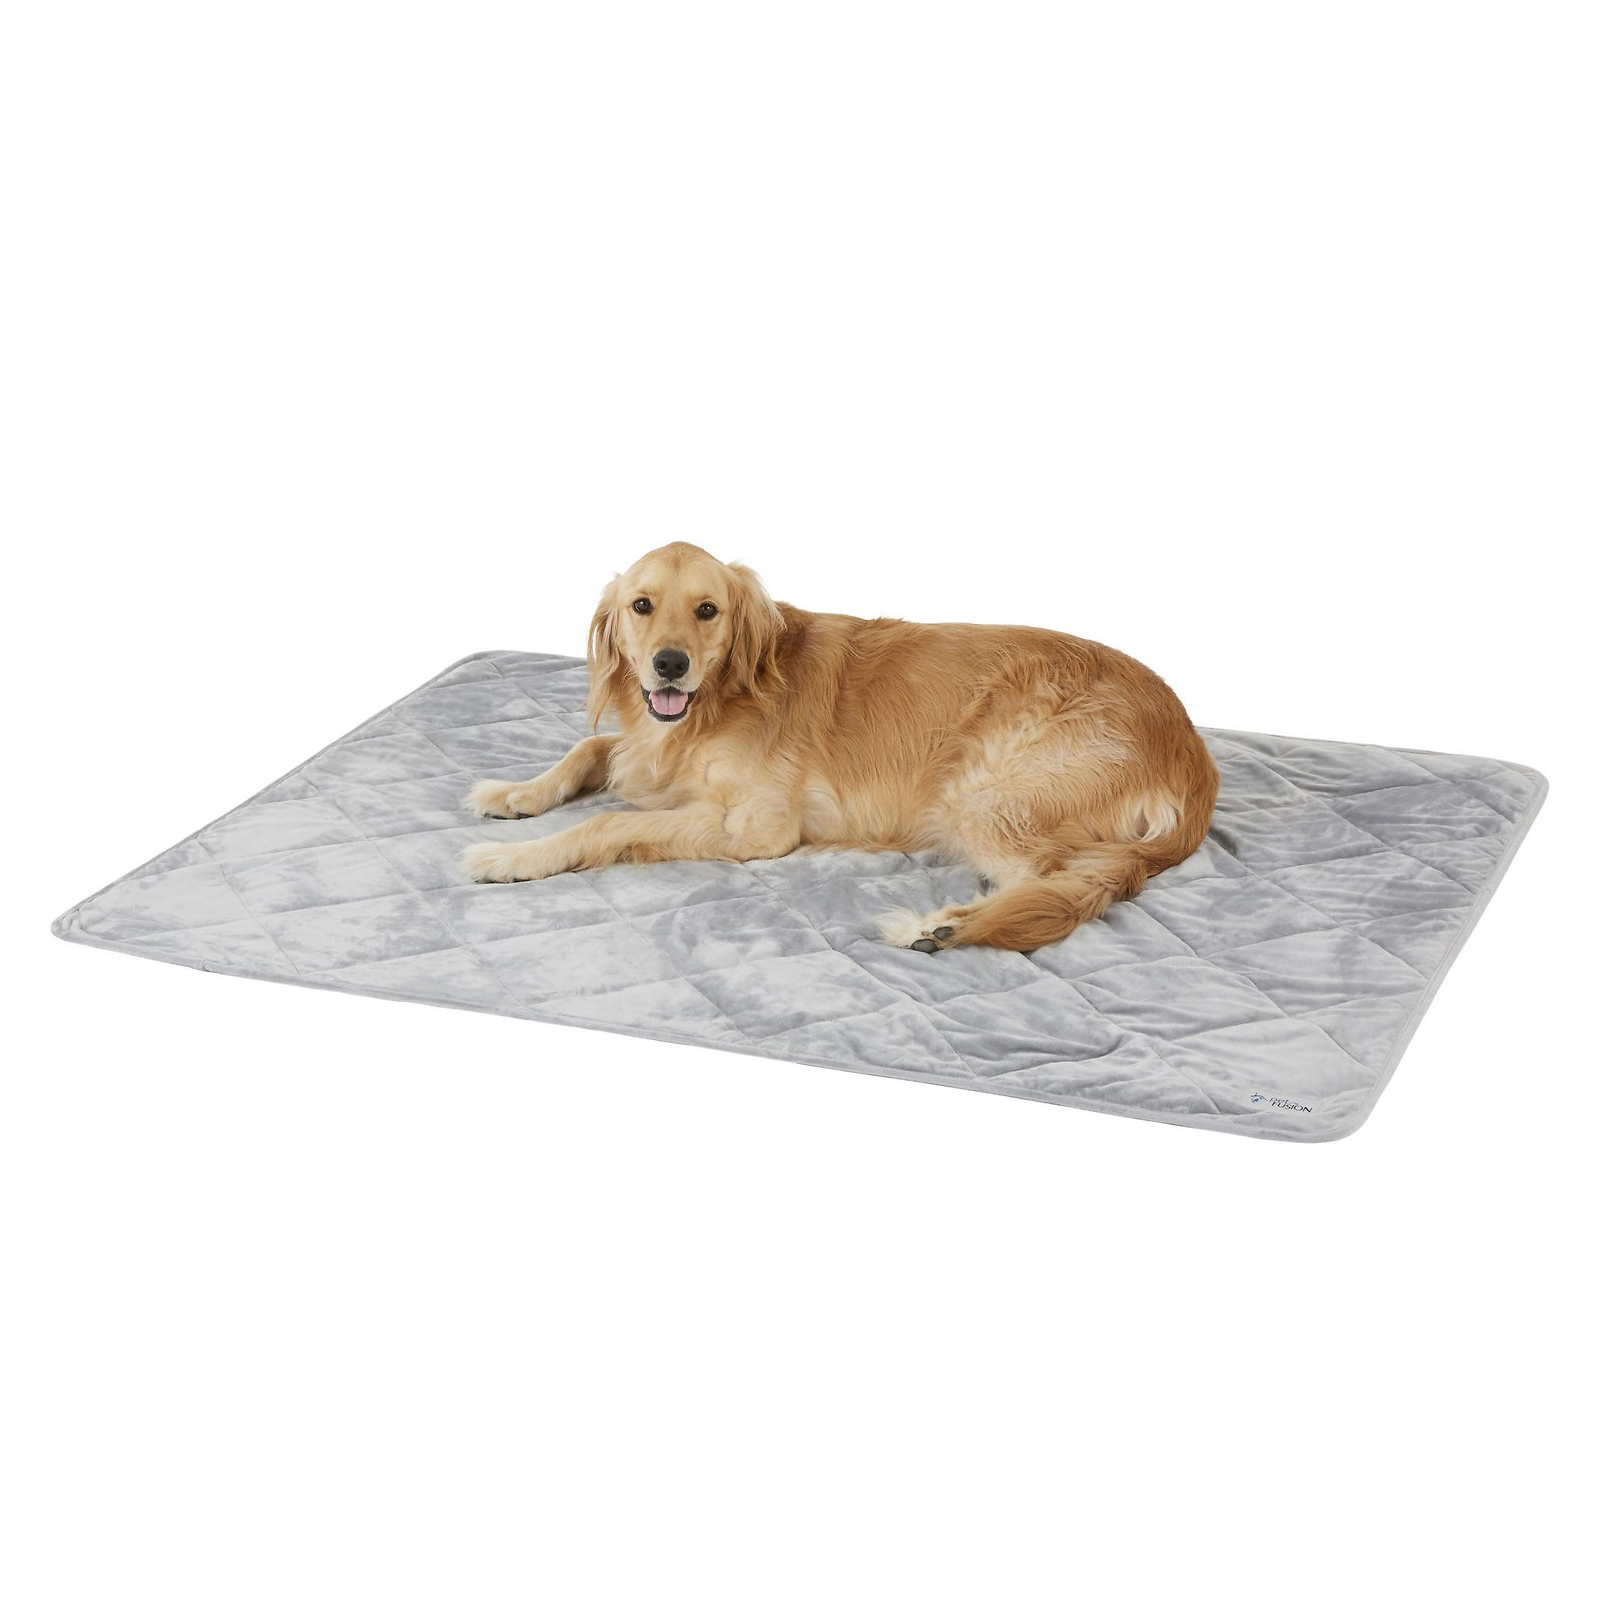 petfusion-microplush-quilted-dog-and-cat-blanket